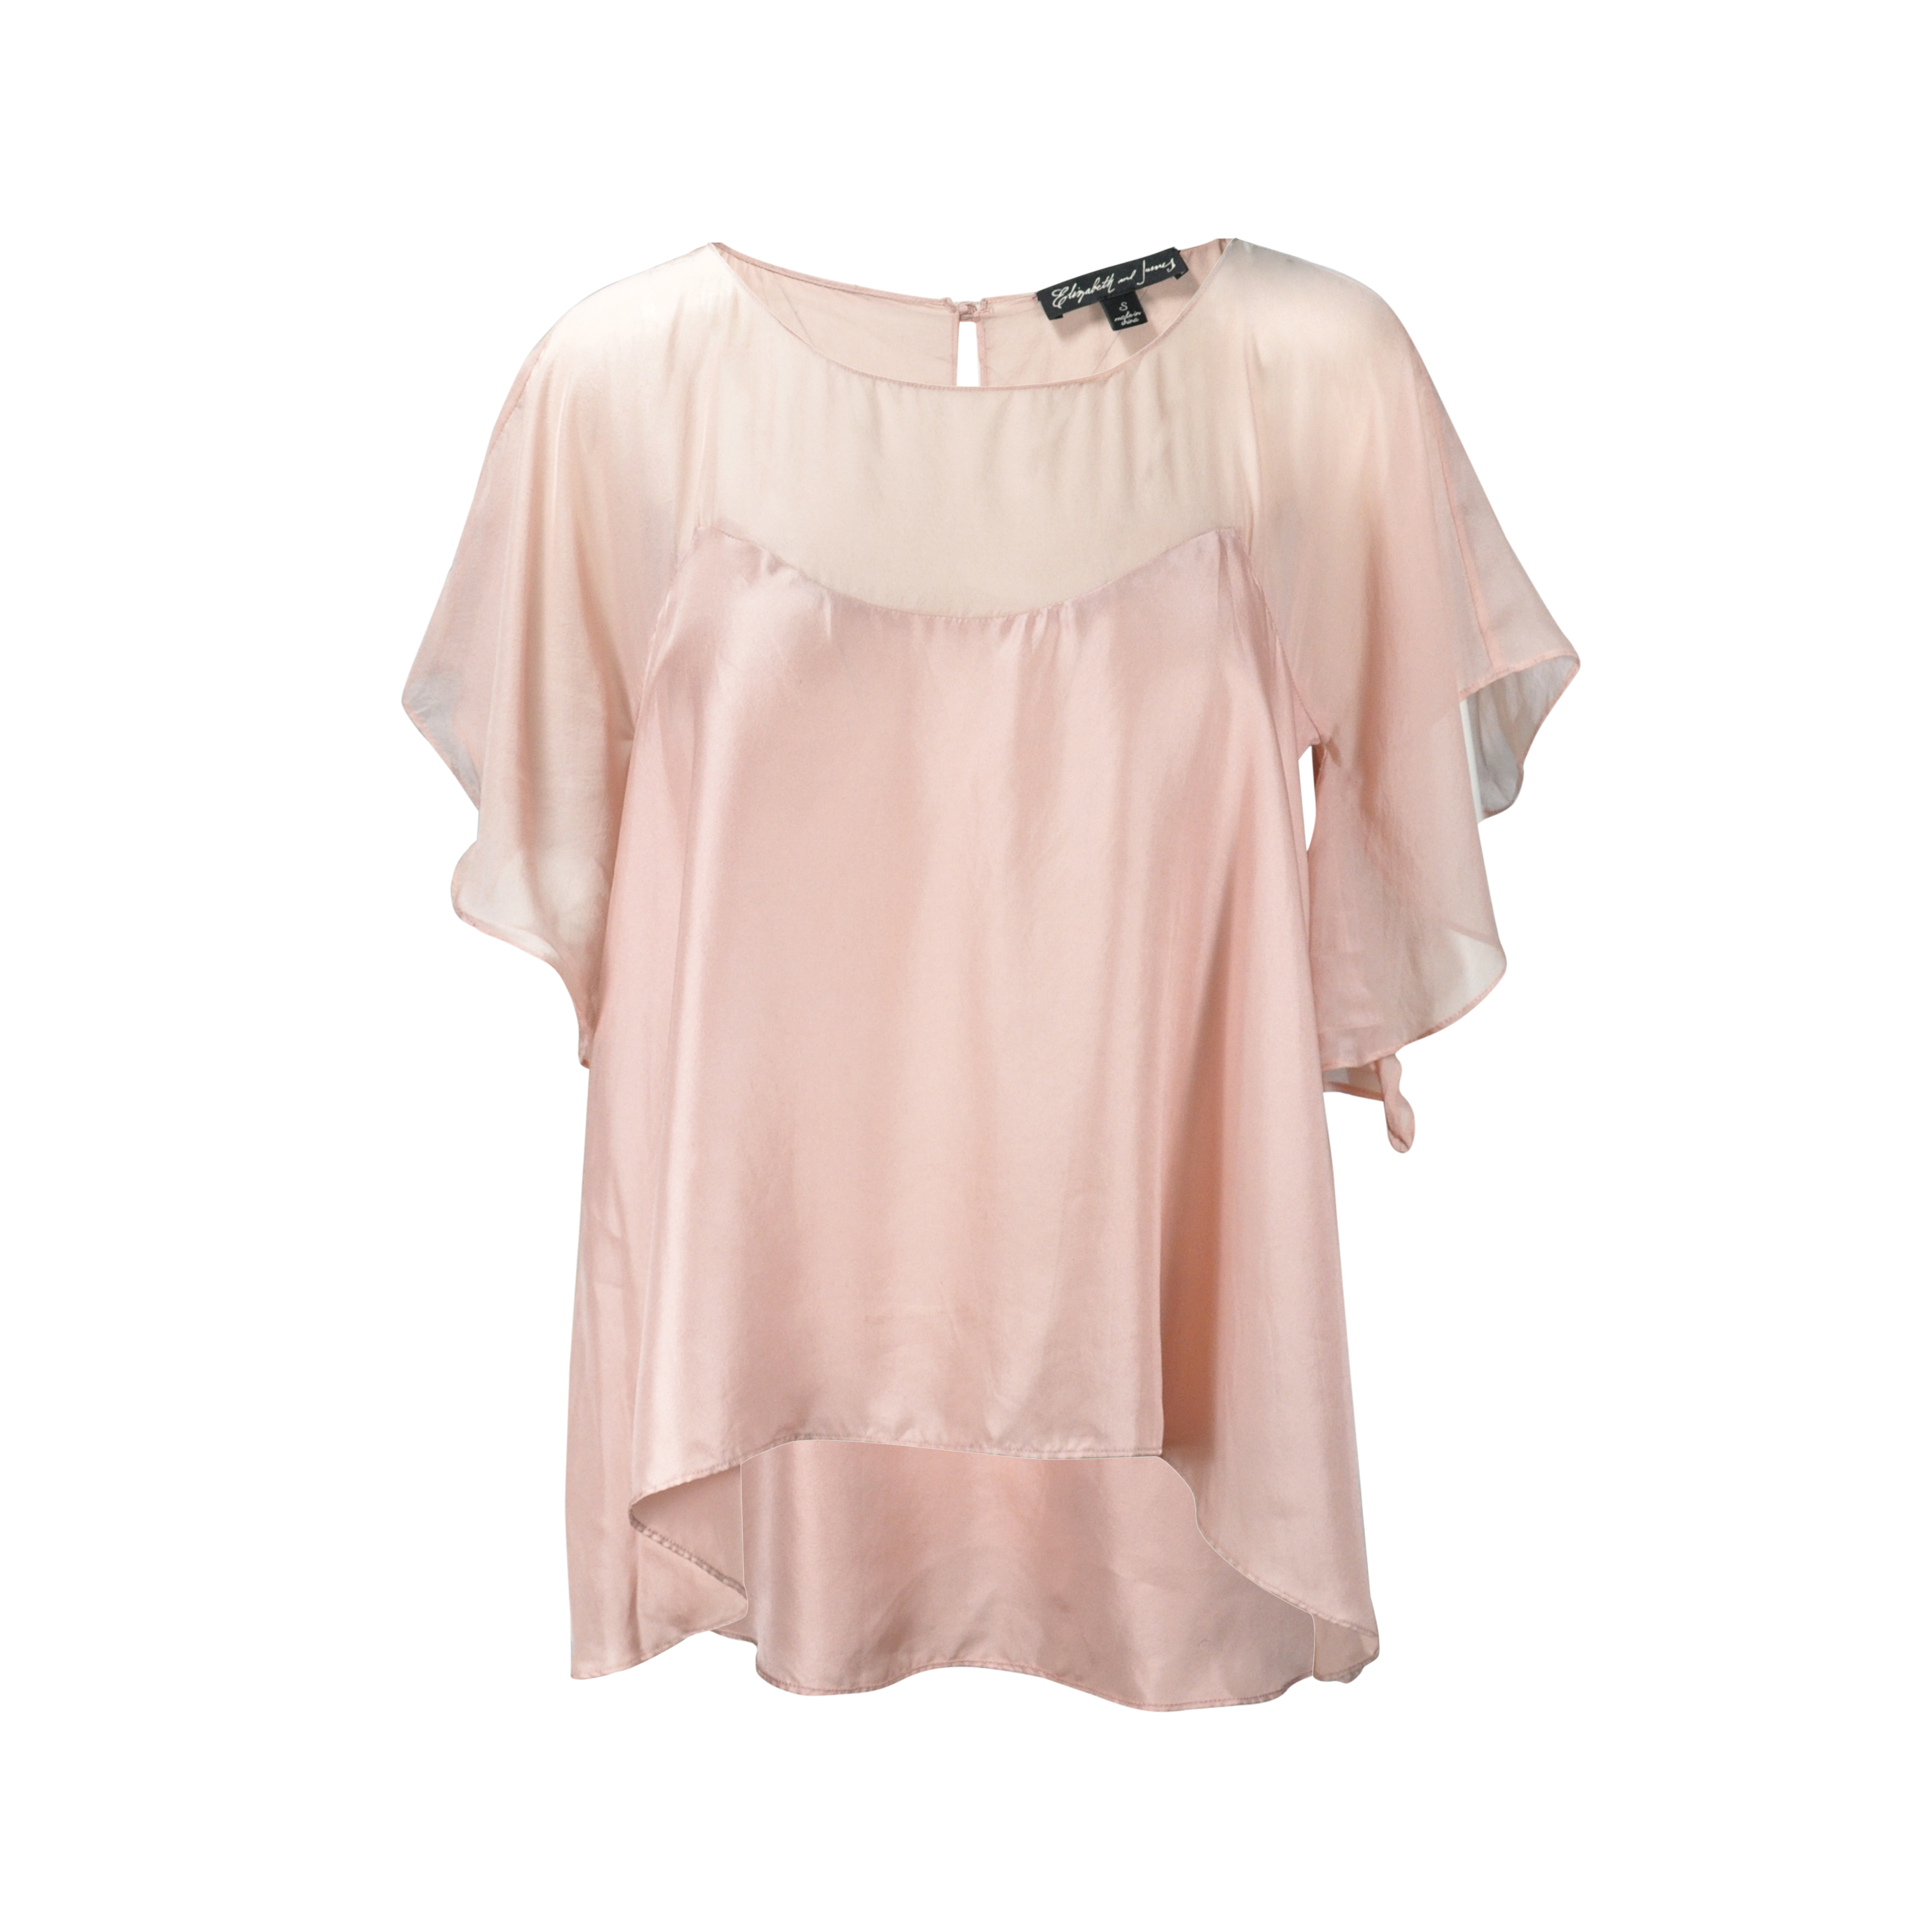 7273252fcda465 Authentic Second Hand Elizabeth and James Silk Butterfly Top  (PSS-200-00126)